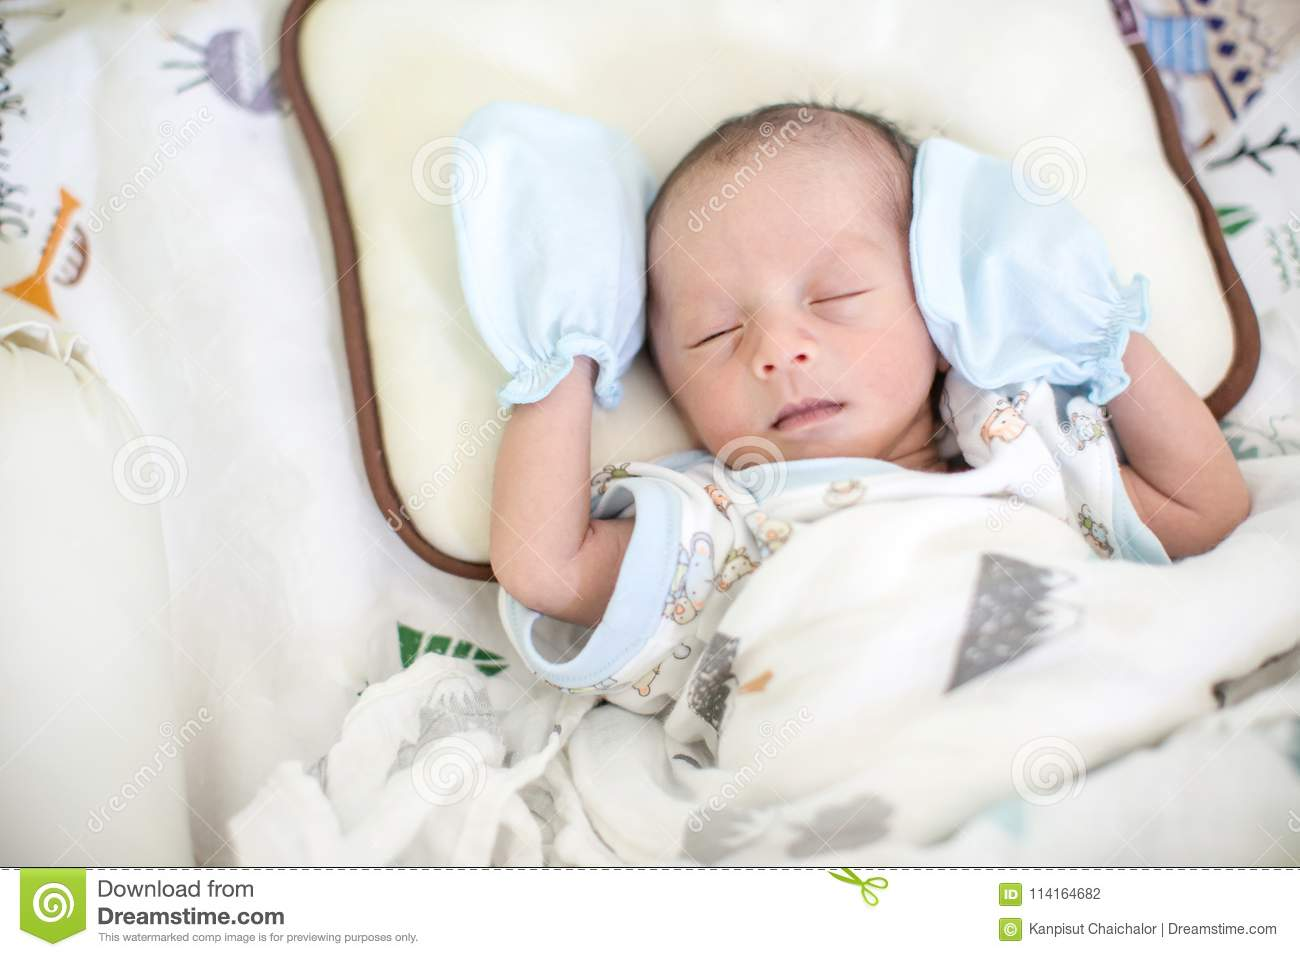 Baby Boy Sleeping On The Bed Growth Hormone And Sleep In Infant Cute Baby Boy Asleep Beauty And Fashion Of Baby Stock Photo Image Of Background Closeup 114164682